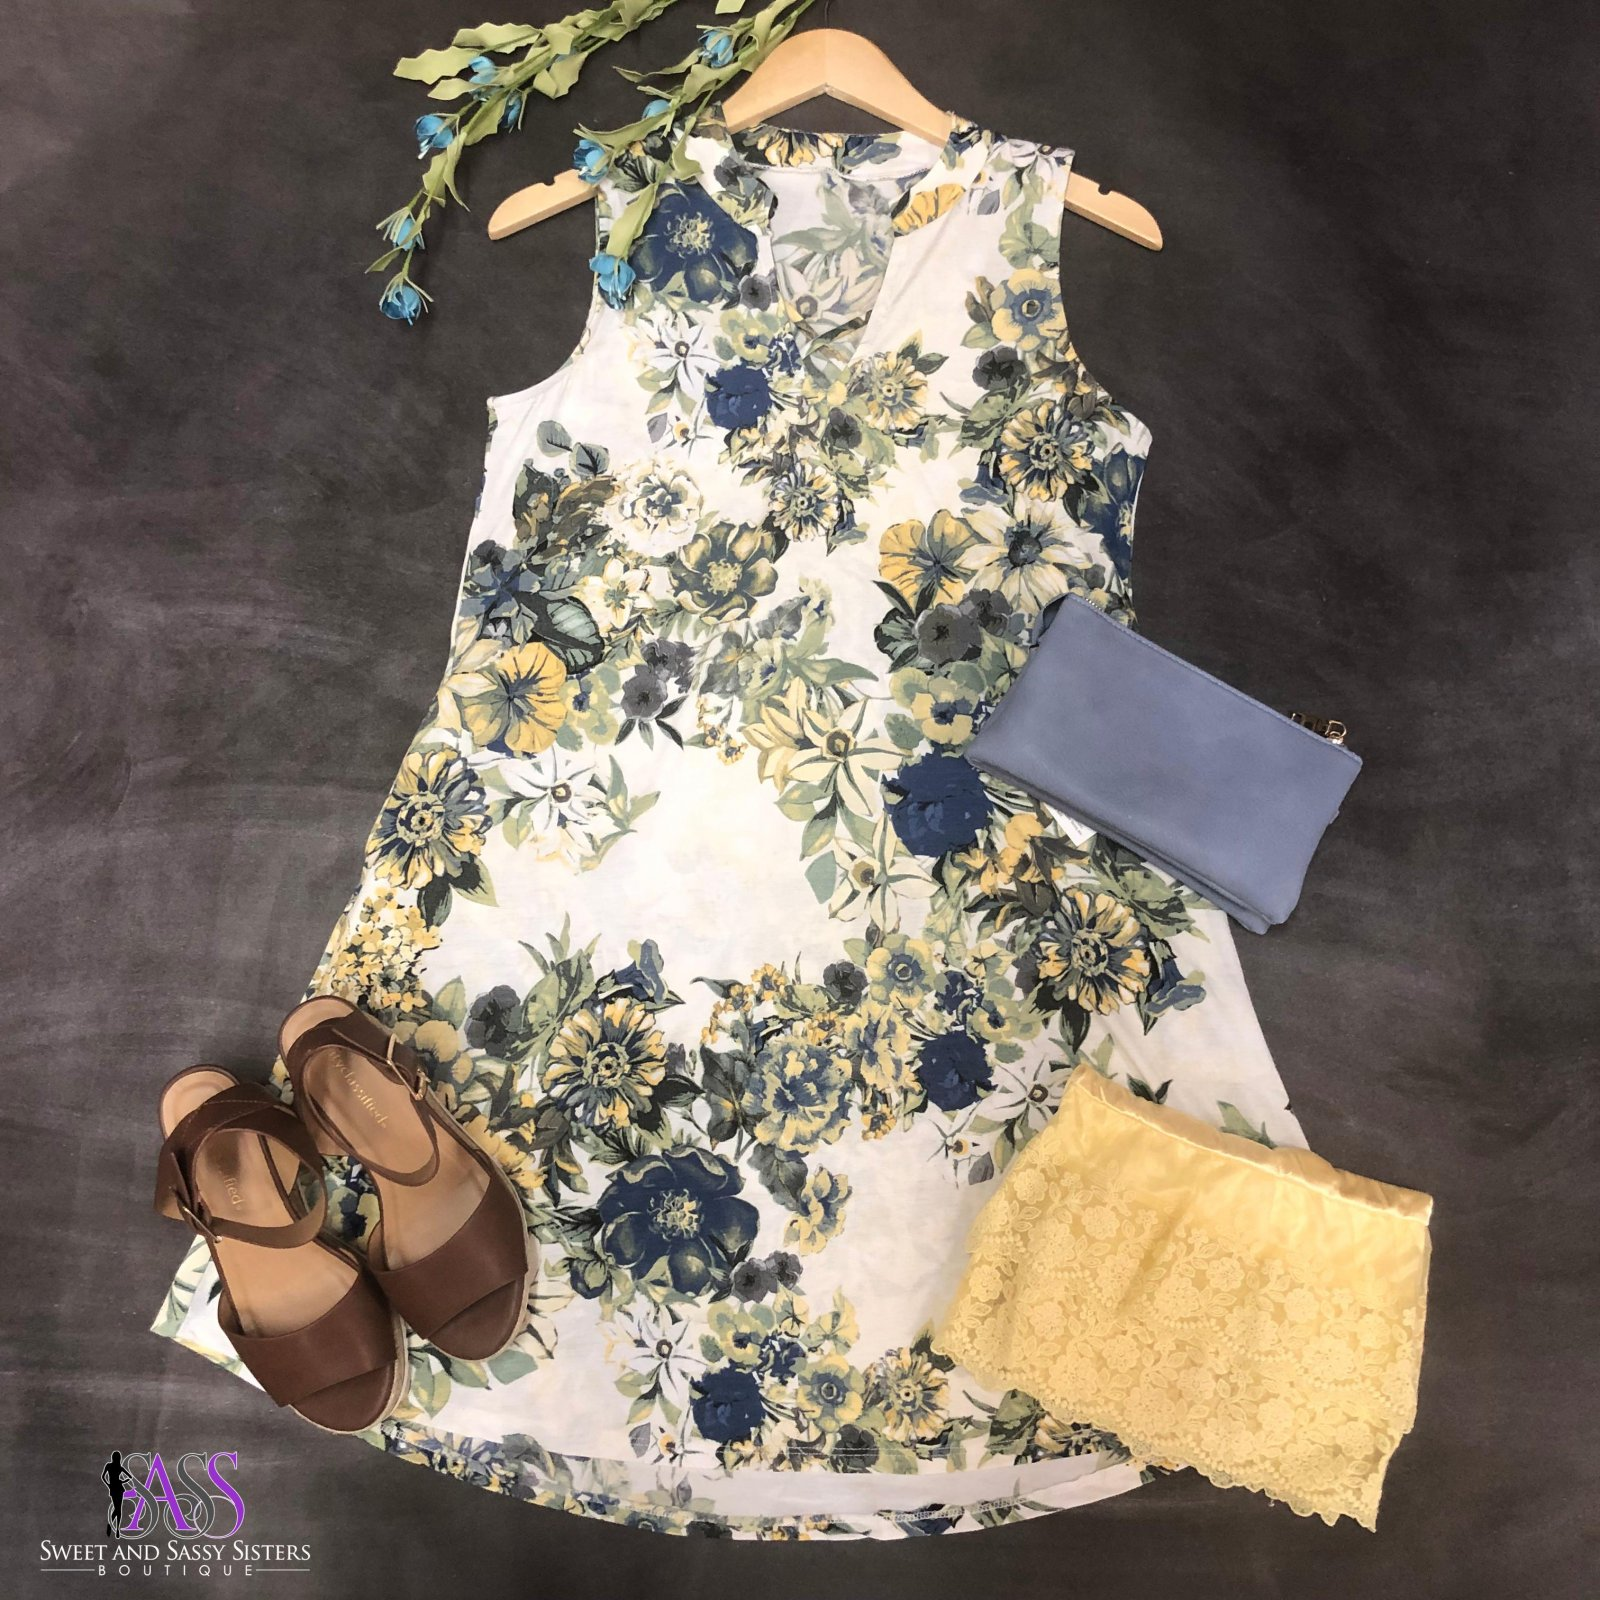 Ivory and Blue Floral Print Sleeveless Dress